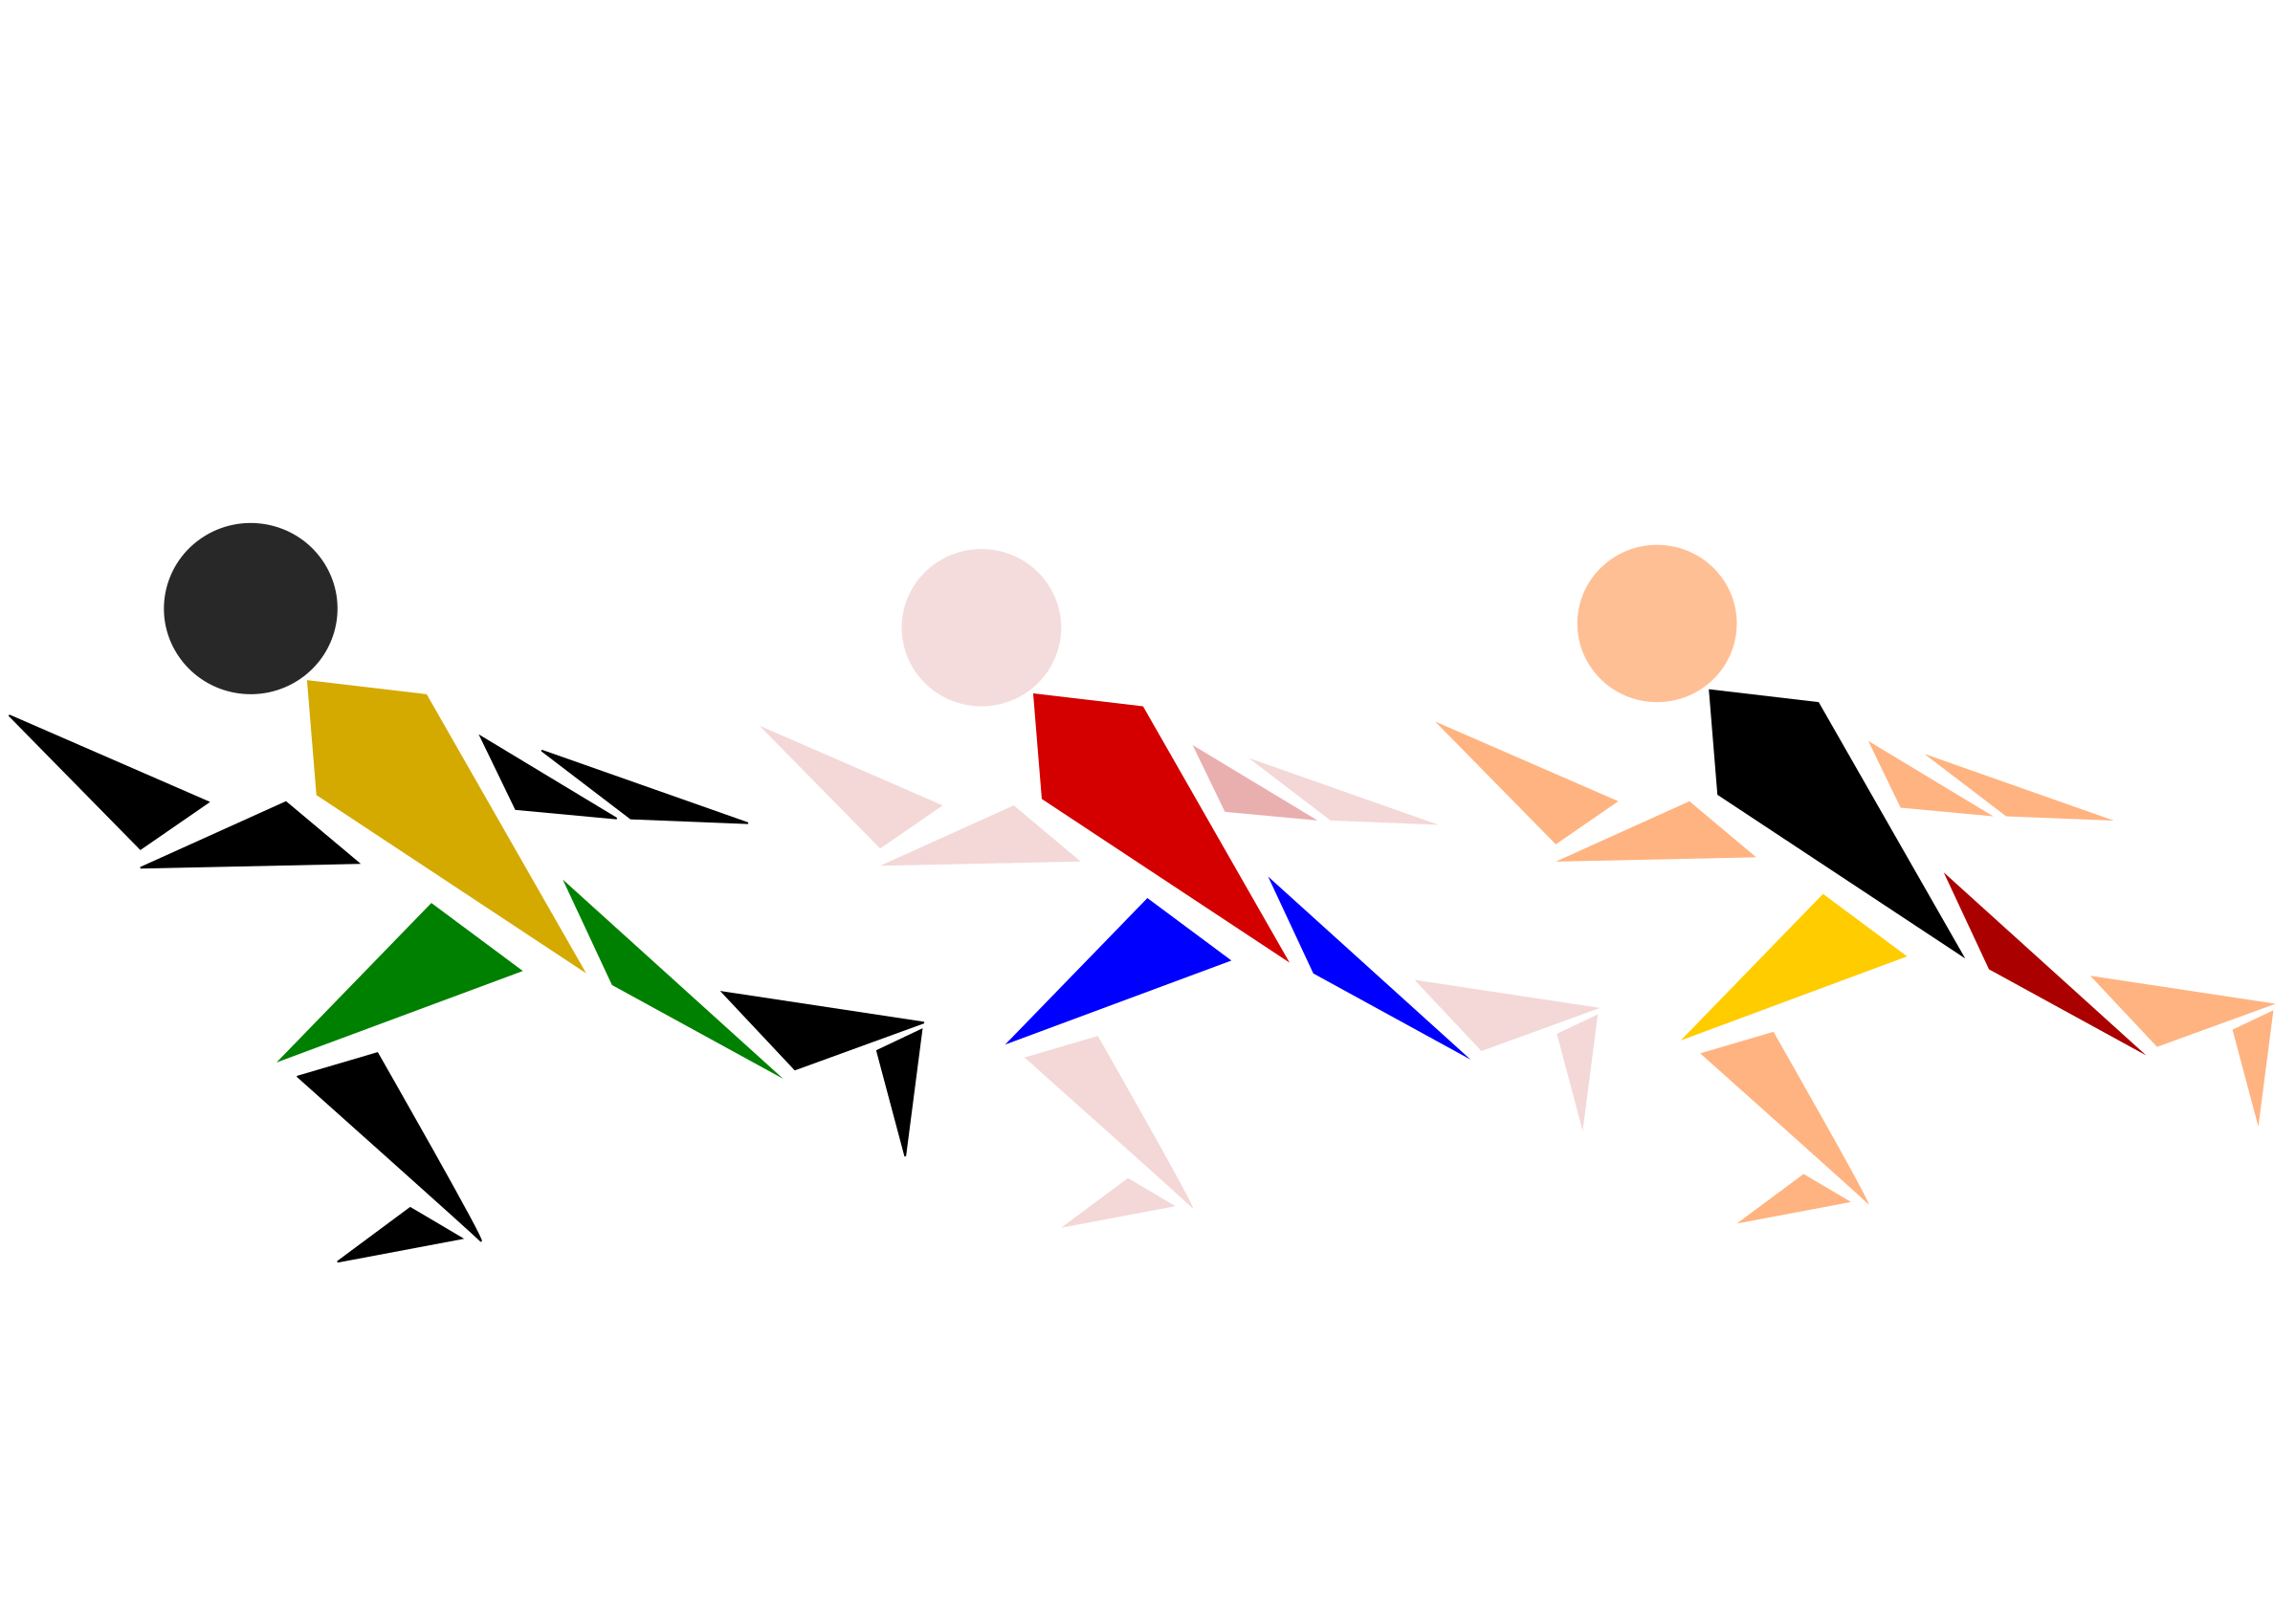 Race clipart track and field Olympics Clipart (PNG) BIG IMAGE